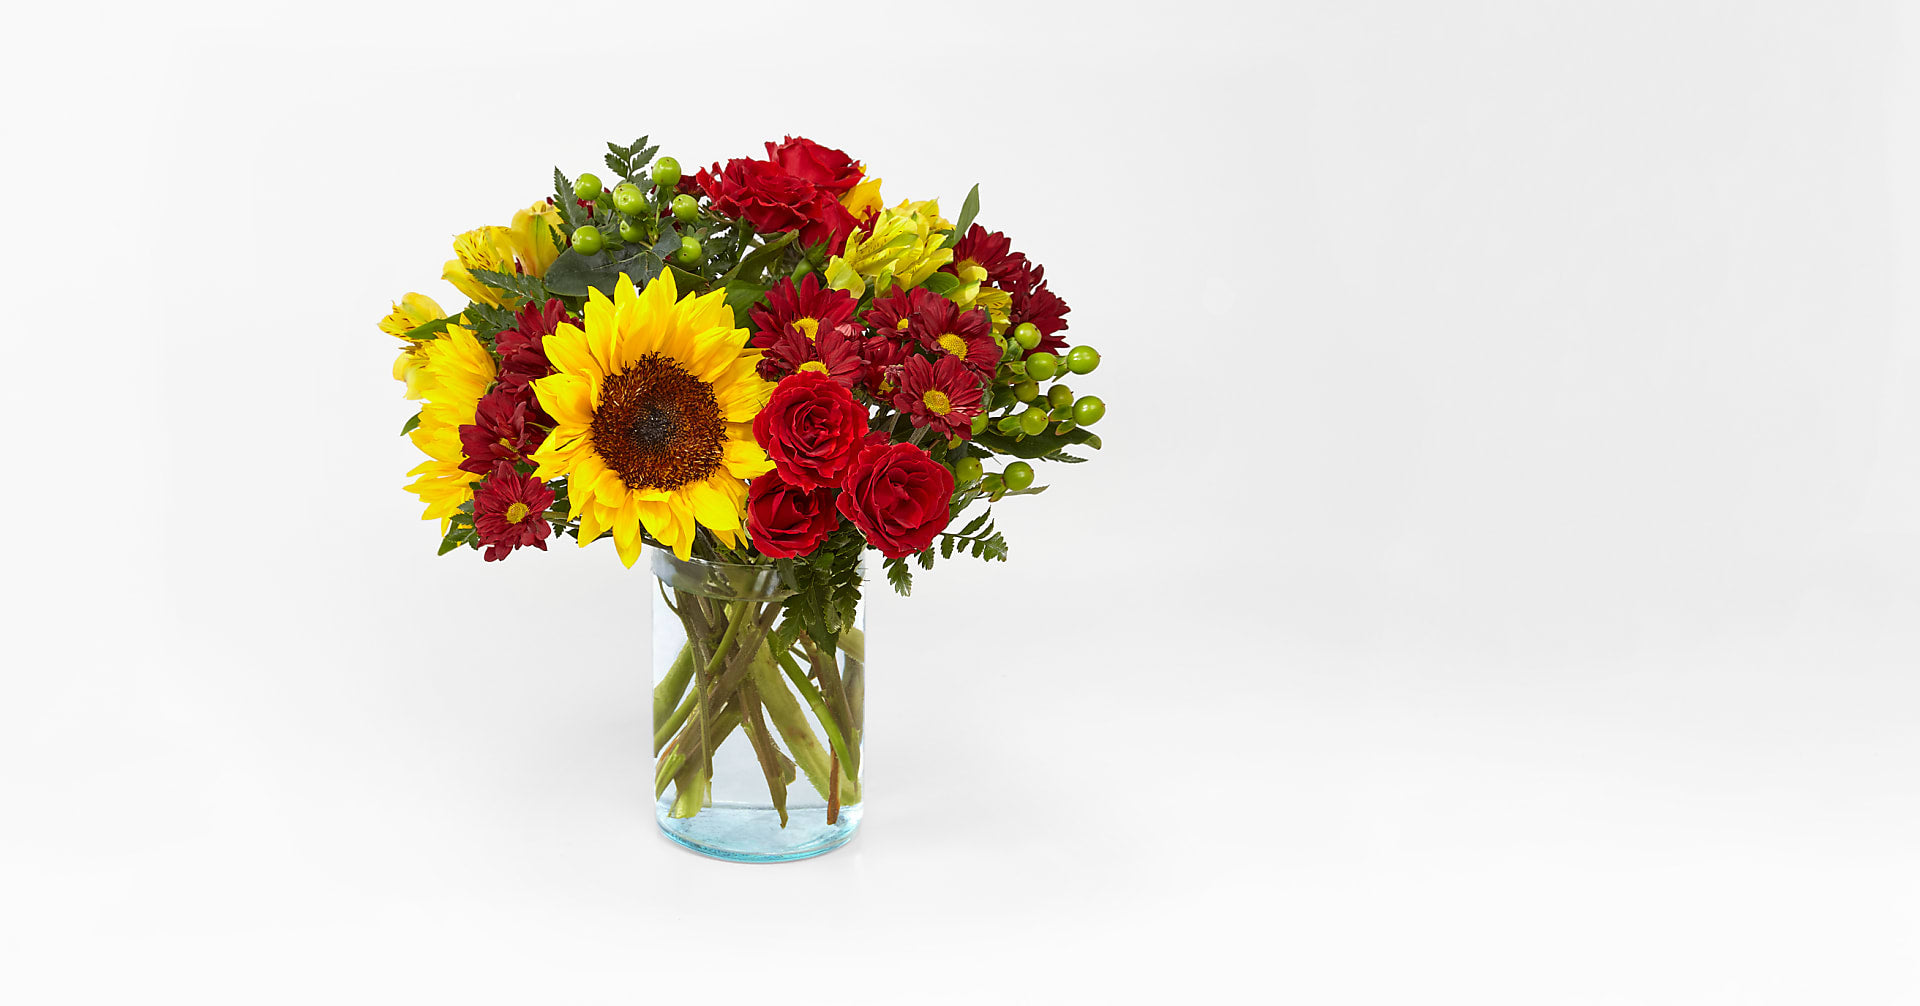 Cinnamon Spice Bouquet - Image 1 Of 2